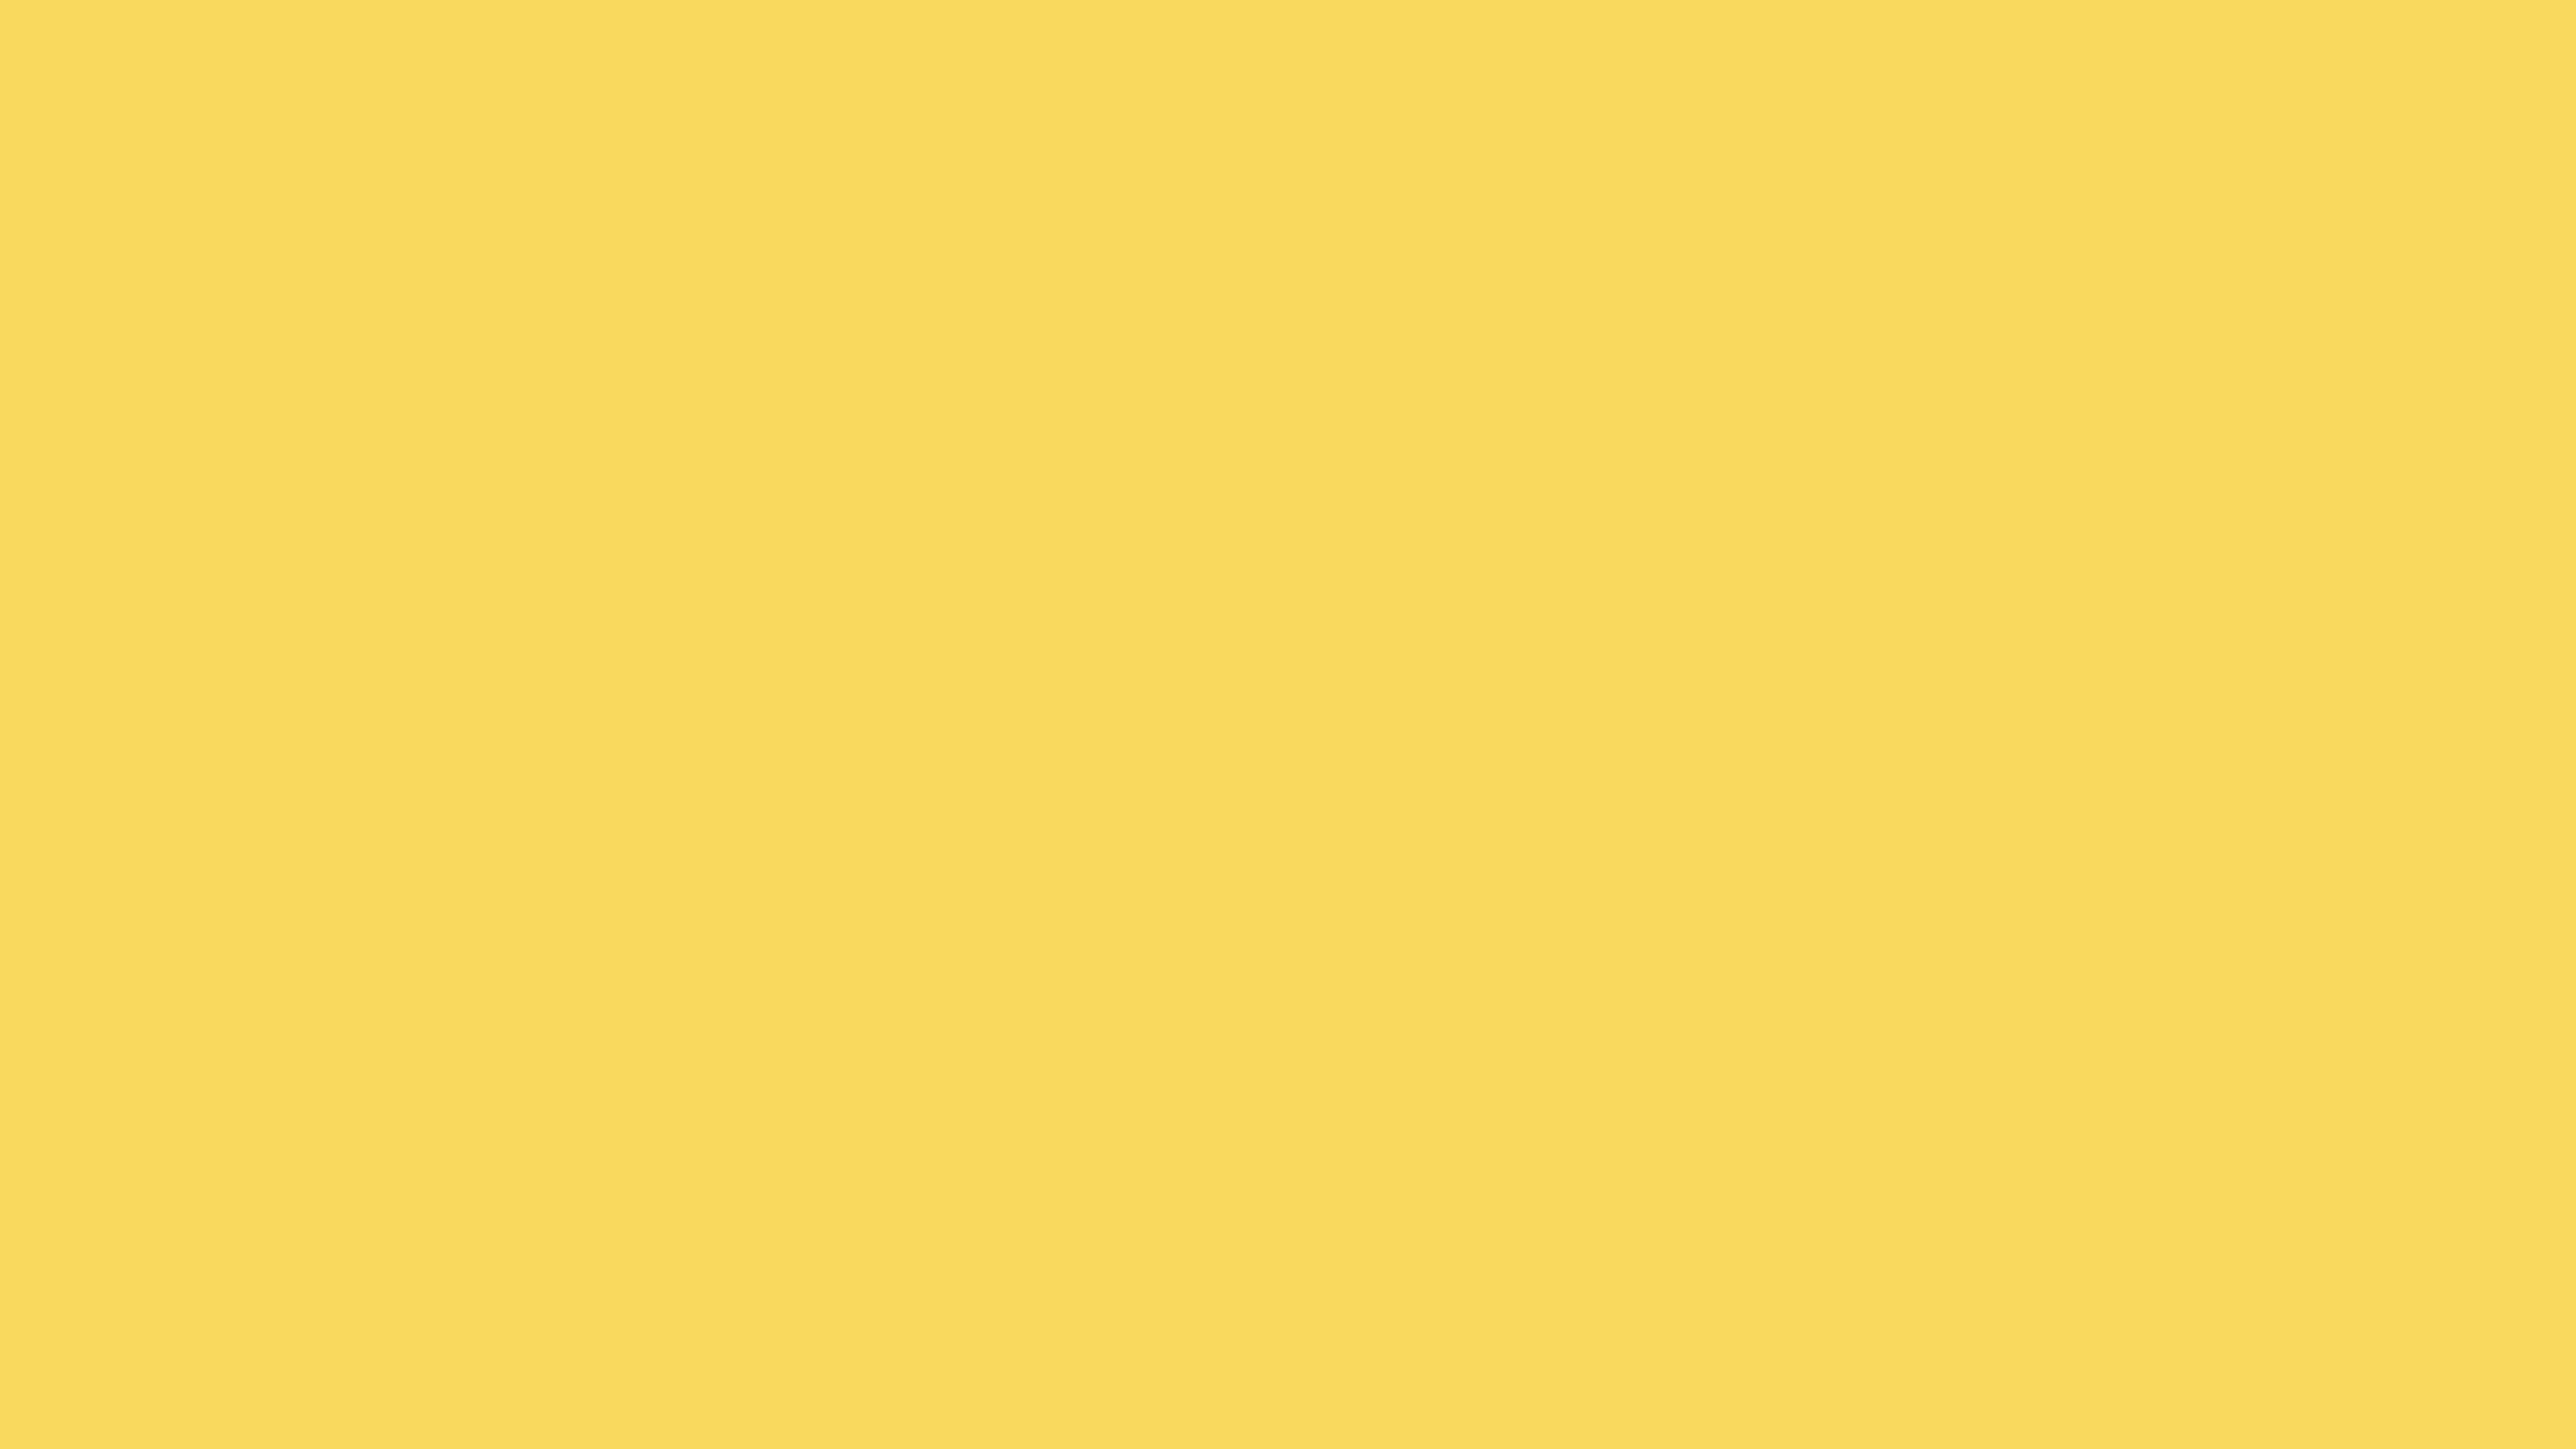 5120x2880 Royal Yellow Solid Color Background